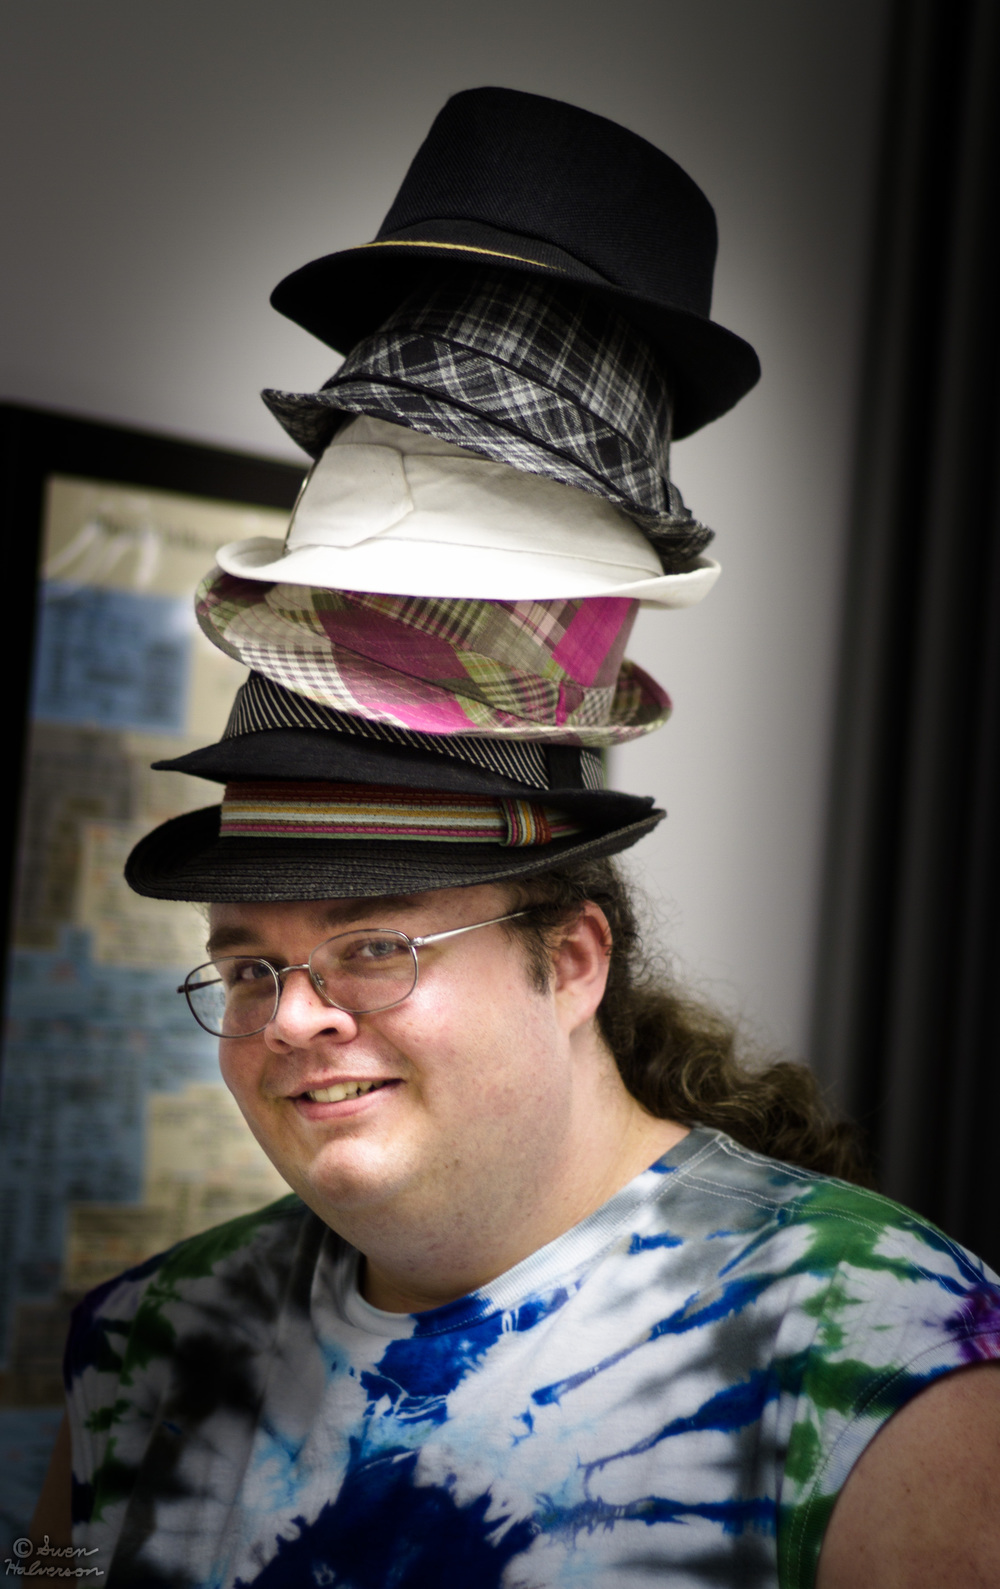 Theme: S <br>Title: Alex Swiger With Hats